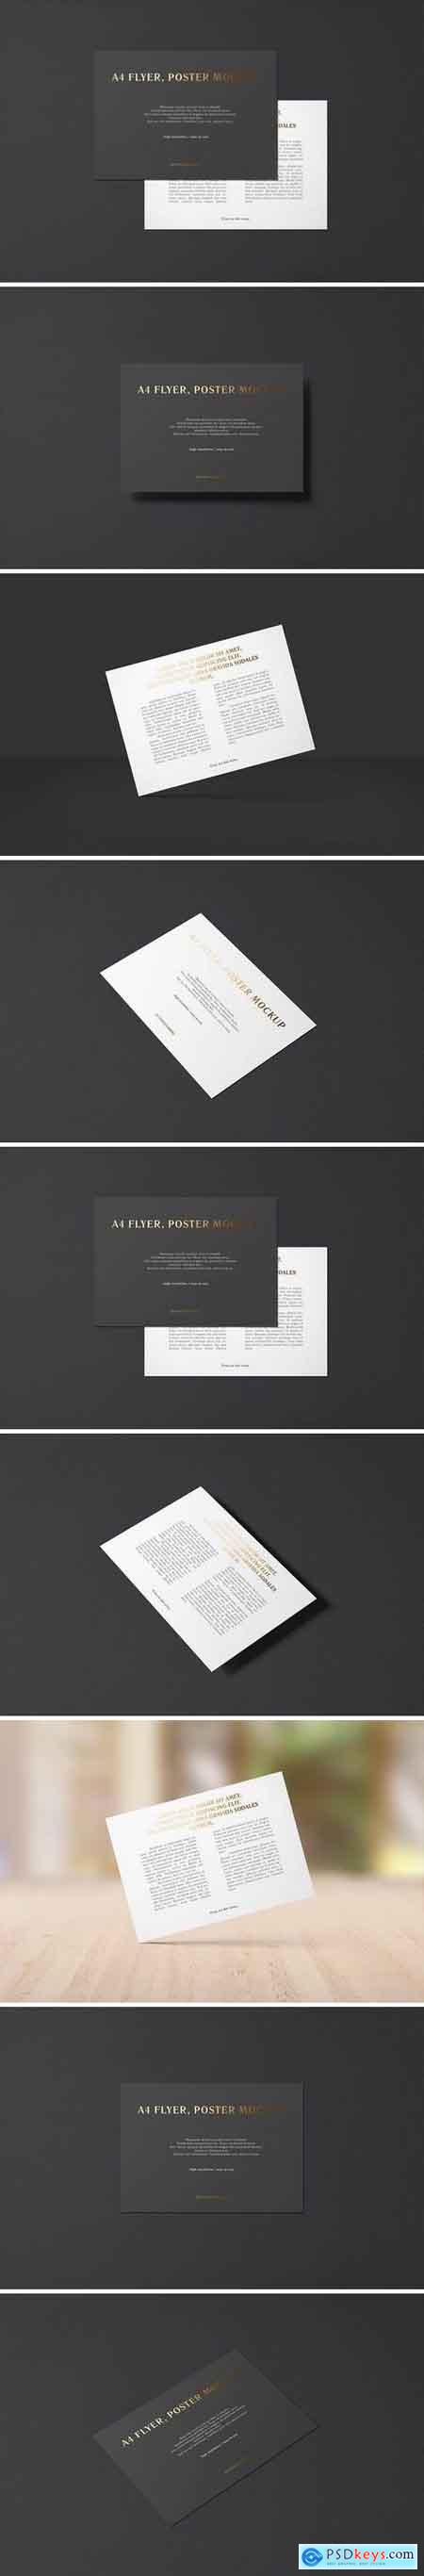 A4 / a5 landscape flyer mockup. A4 Landscape Flyer Mockup Foil Stamping Edition Free Download Photoshop Vector Stock Image Via Torrent Zippyshare From Psdkeys Com